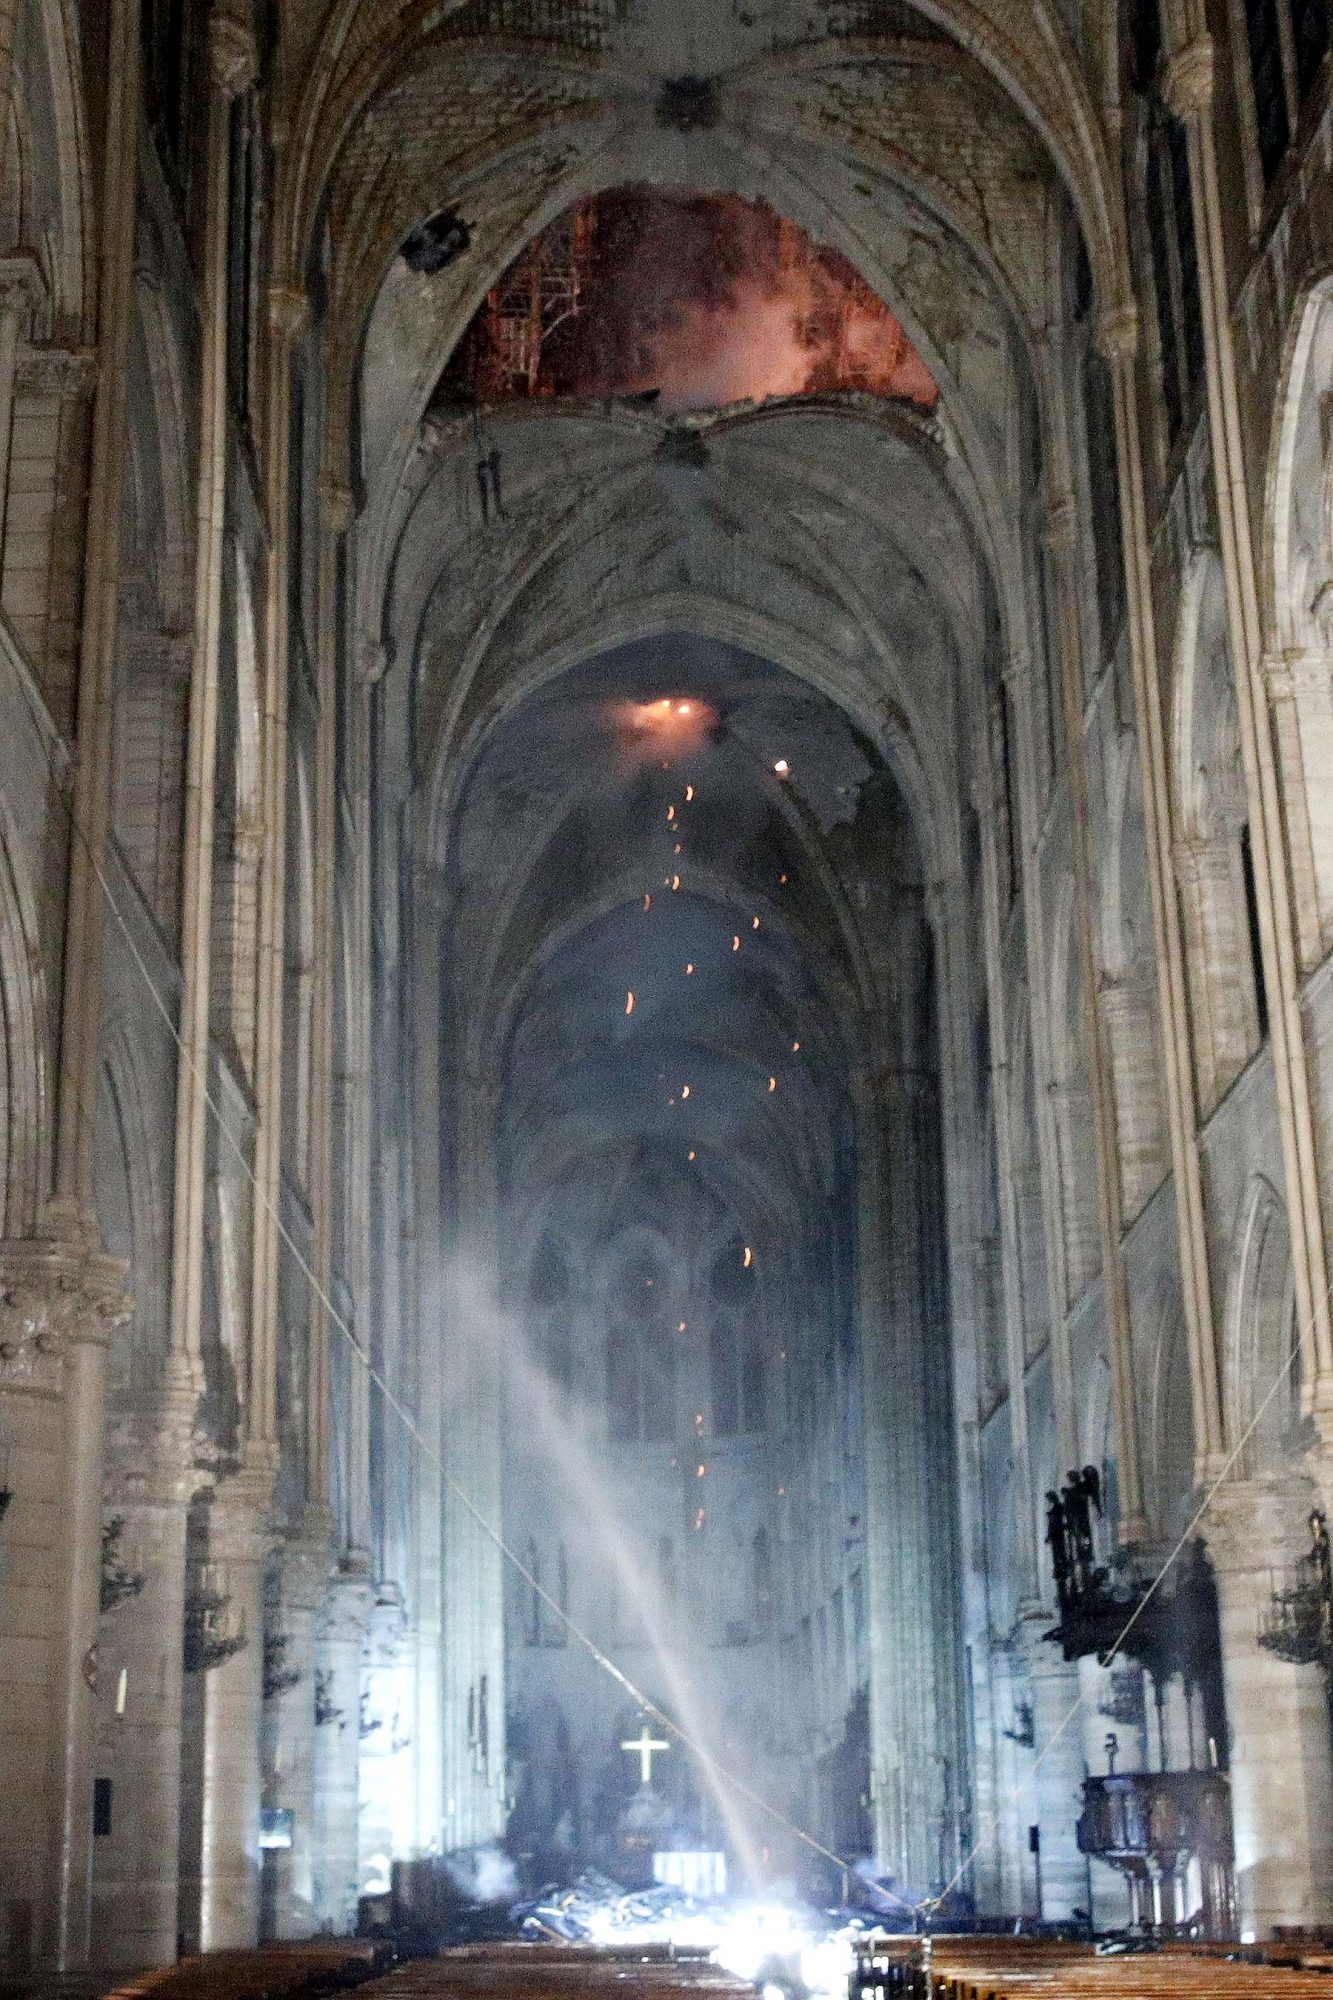 Cathedral of Notre-Dame of Paris on fire, France - 15 Apr 2019